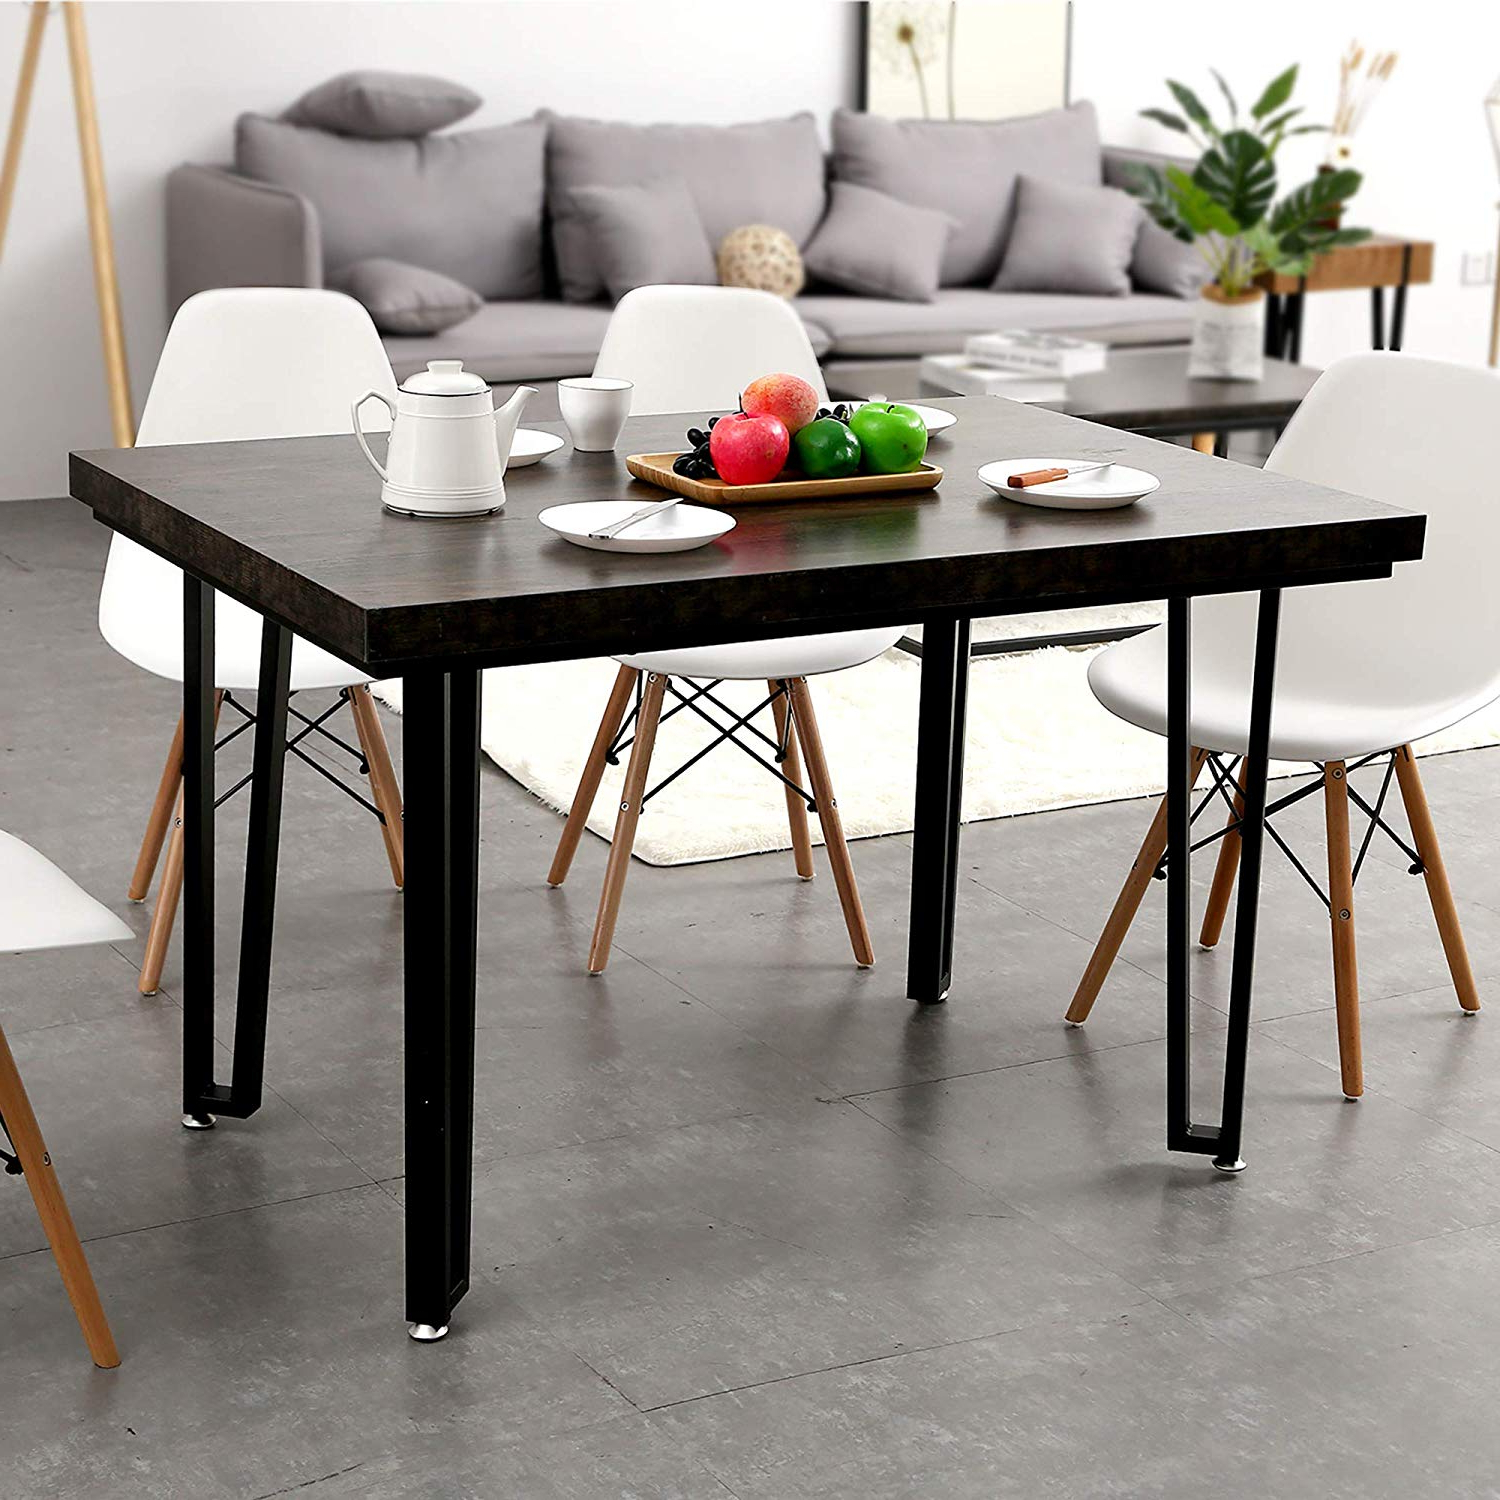 "Trendy Frosted Glass Modern Dining Tables With Grey Finish Metal Tapered Legs Within Ivinta Alacrity 47.2"" Rustic Modern Farmhouse Matte Black Metal Rectangle  Kitchen And Dining Room Table Mid Century Industrial (Gallery 5 of 30)"